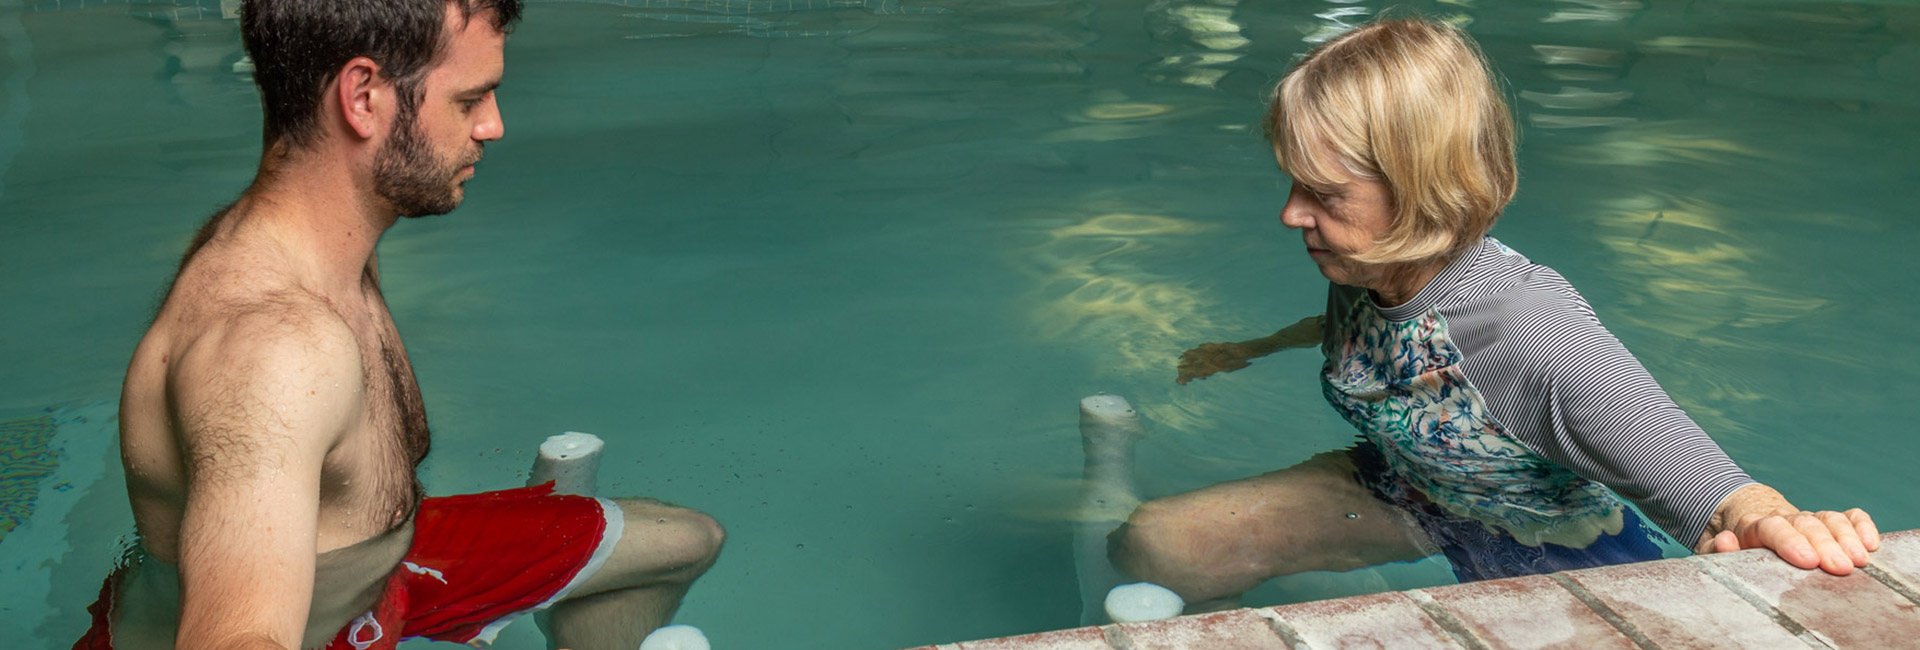 Aquatic-Therapy---Therapeutic-Associates-Physical-Therapy